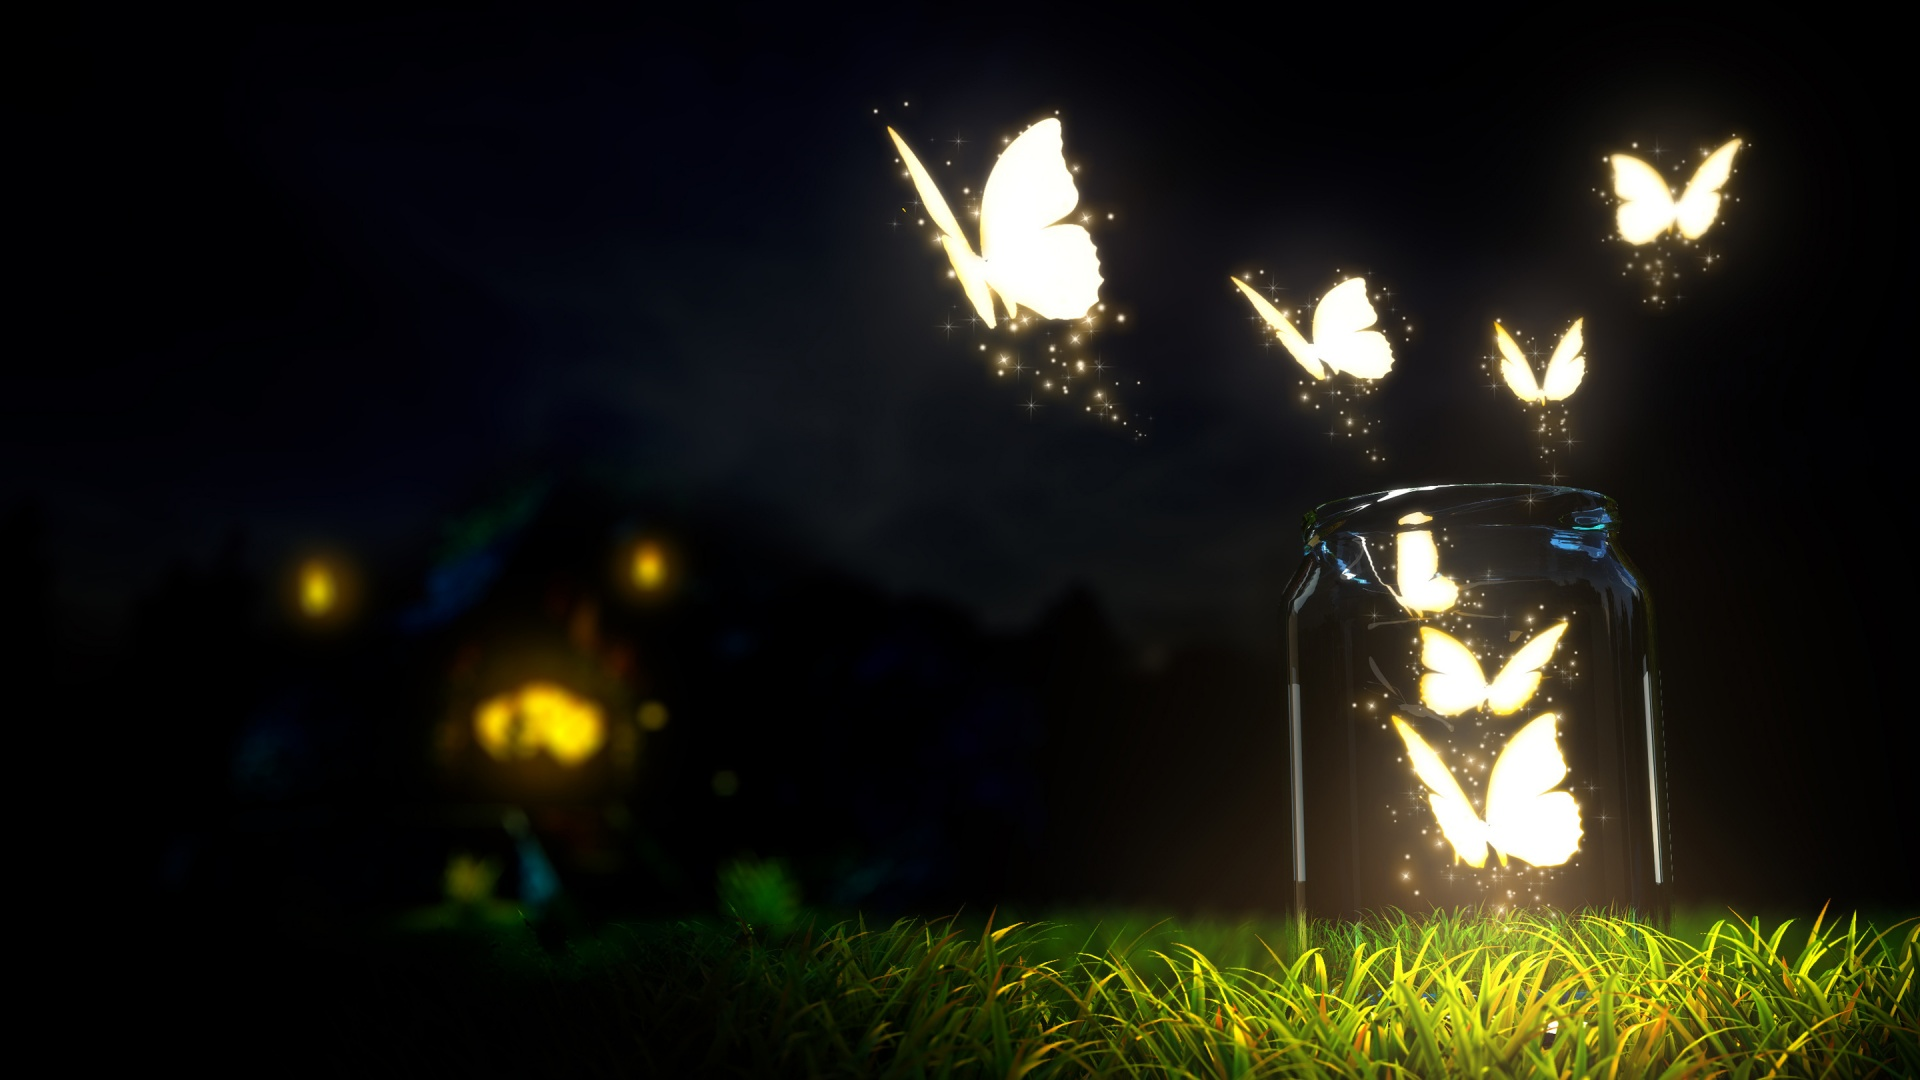 http://www.funchap.com/wp-content/uploads/2015/08/free-download-butterfly-wallpaper.jpg